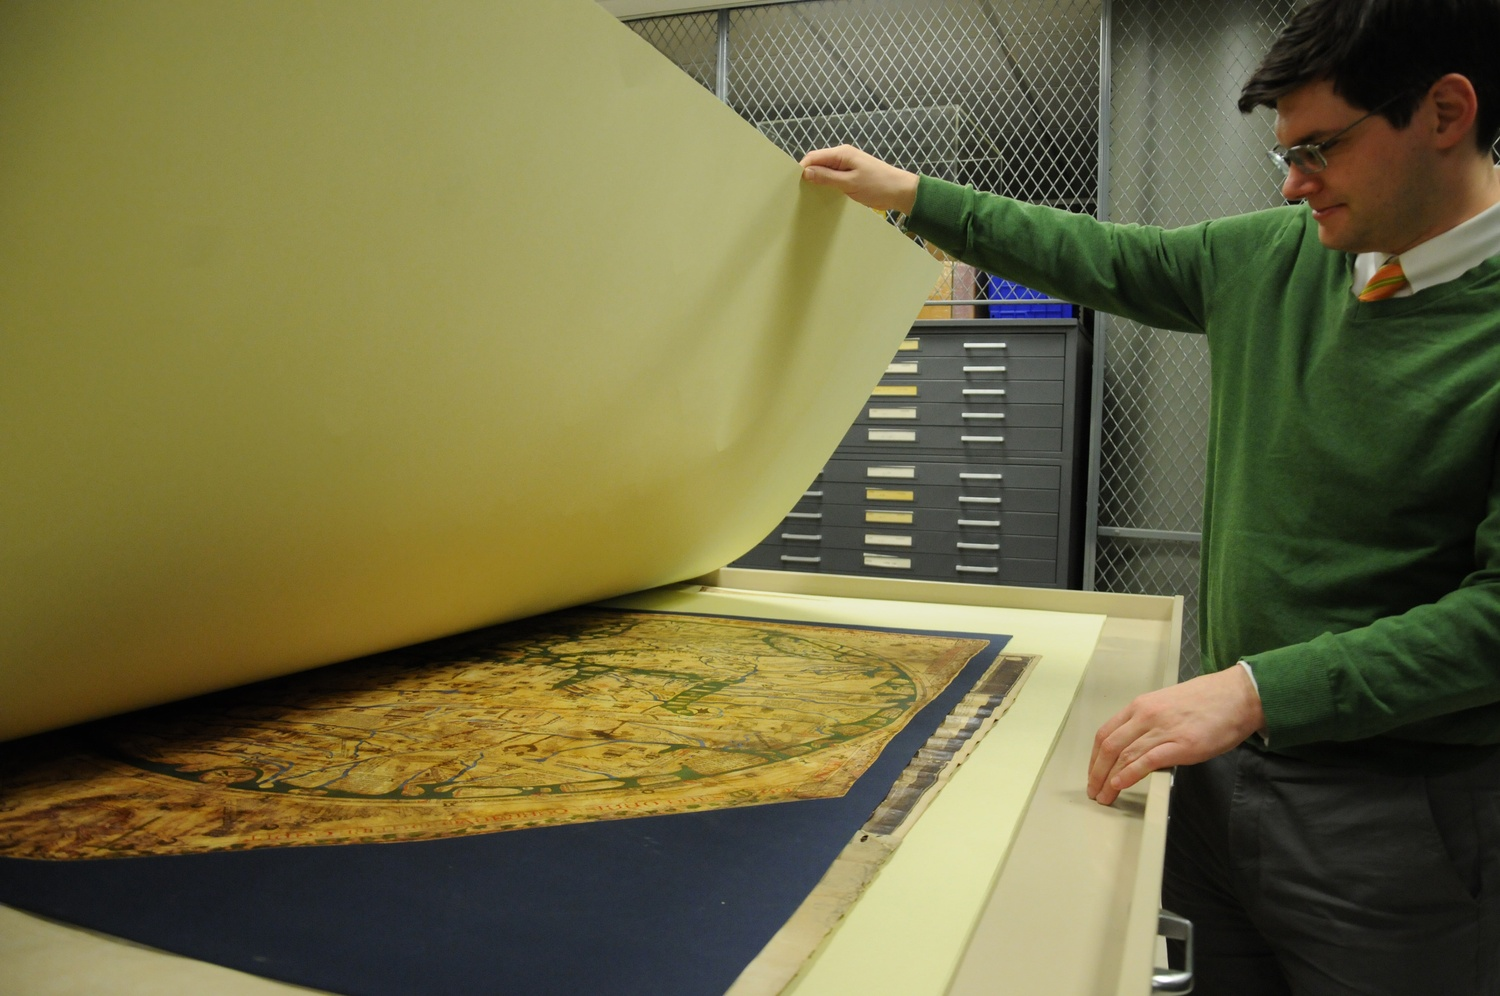 David Weimer, librarian for Cartographic Collections and Learning at the Harvard Map Collection, displays a world map held in Pusey Library.